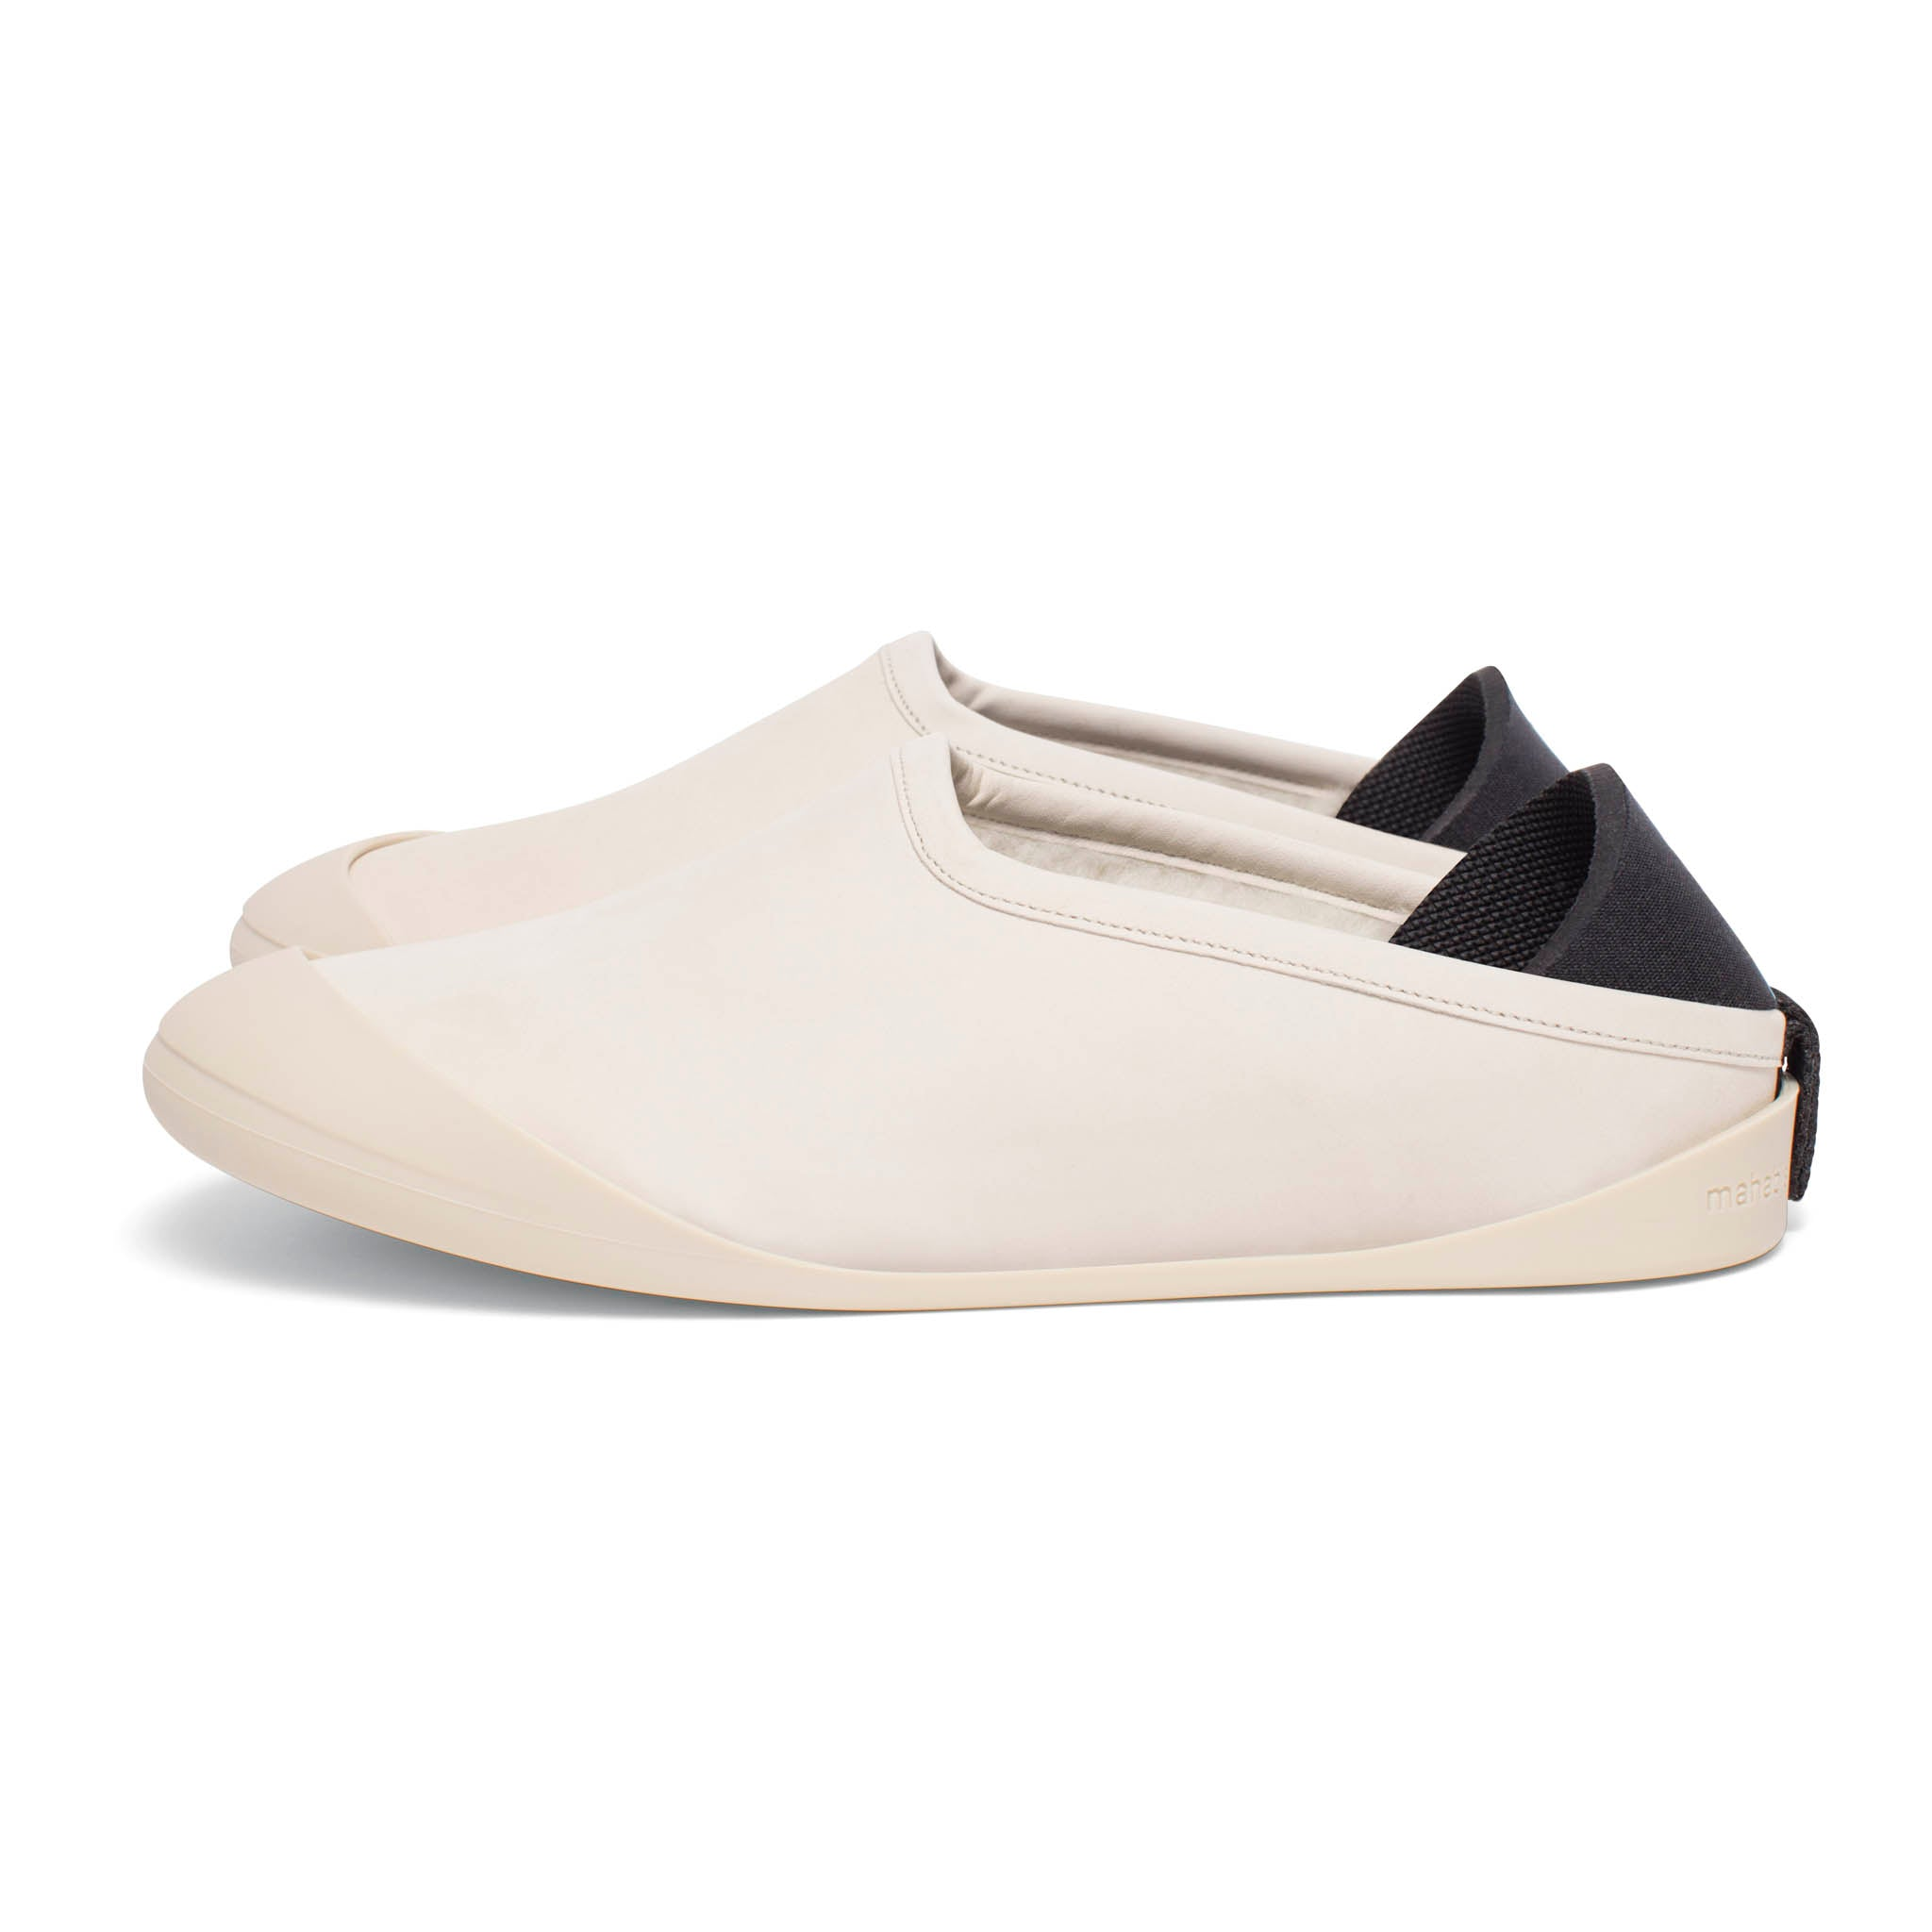 mahabis Stone Summer Slippers + Ivory Detachable Soles Fu22YO2u